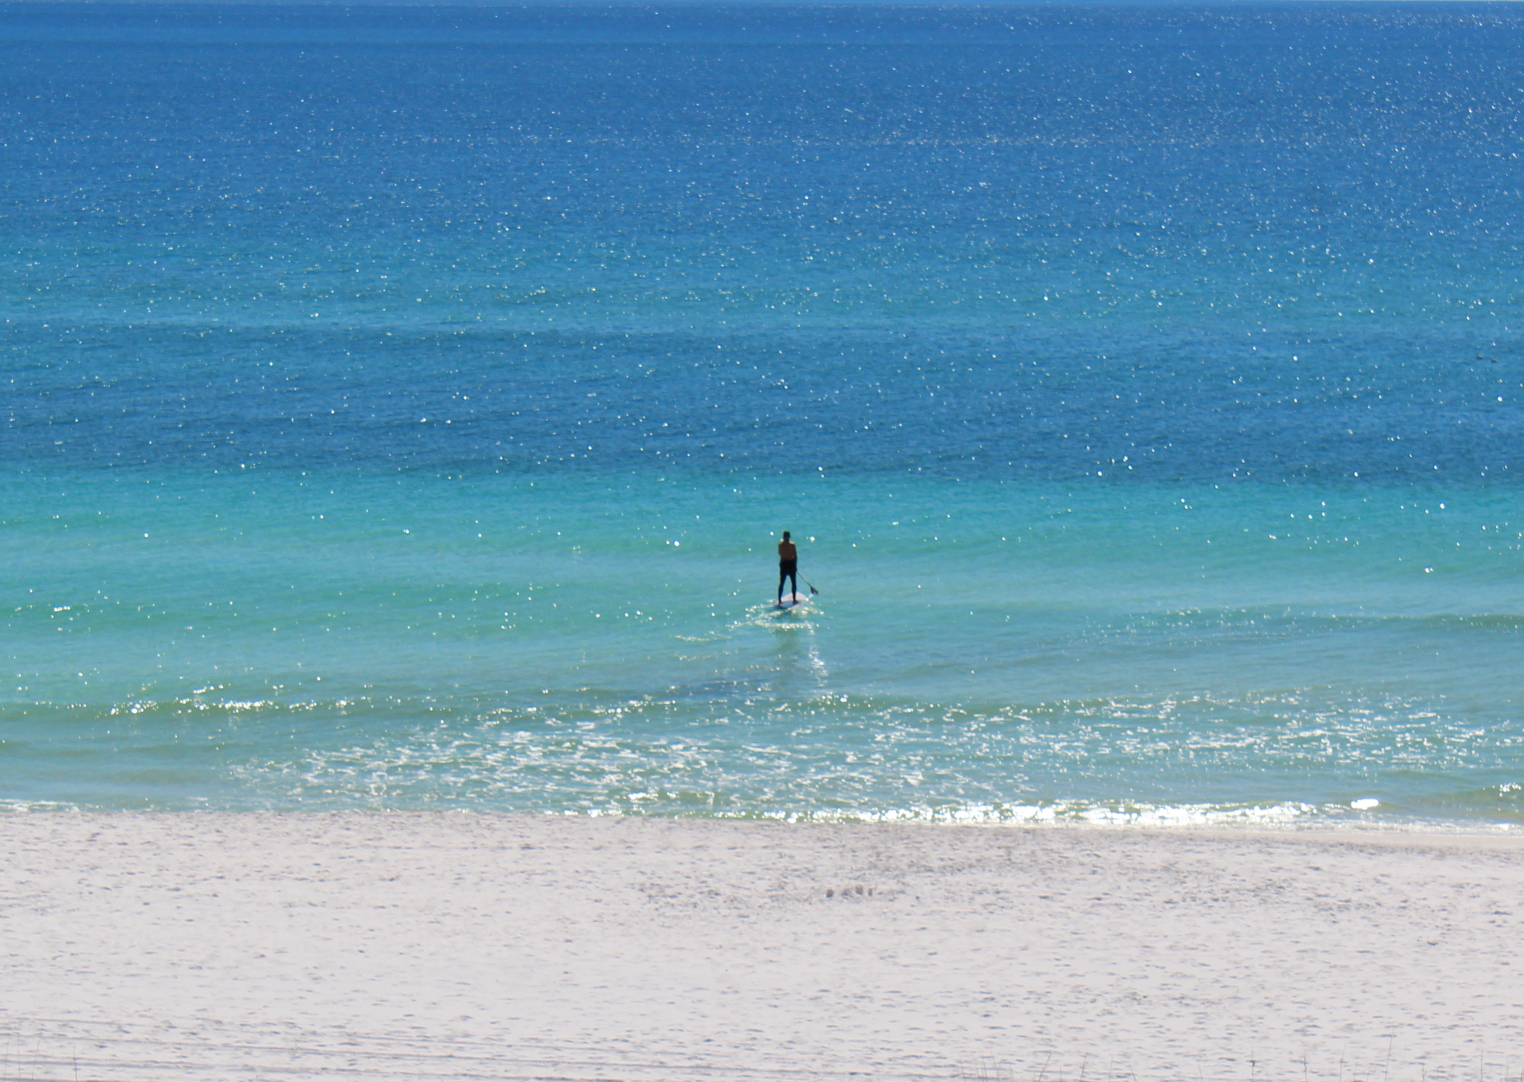 The Emerald Coast of NW Florida is known for beautiful sugary sand beaches and stunning colors of the gulf